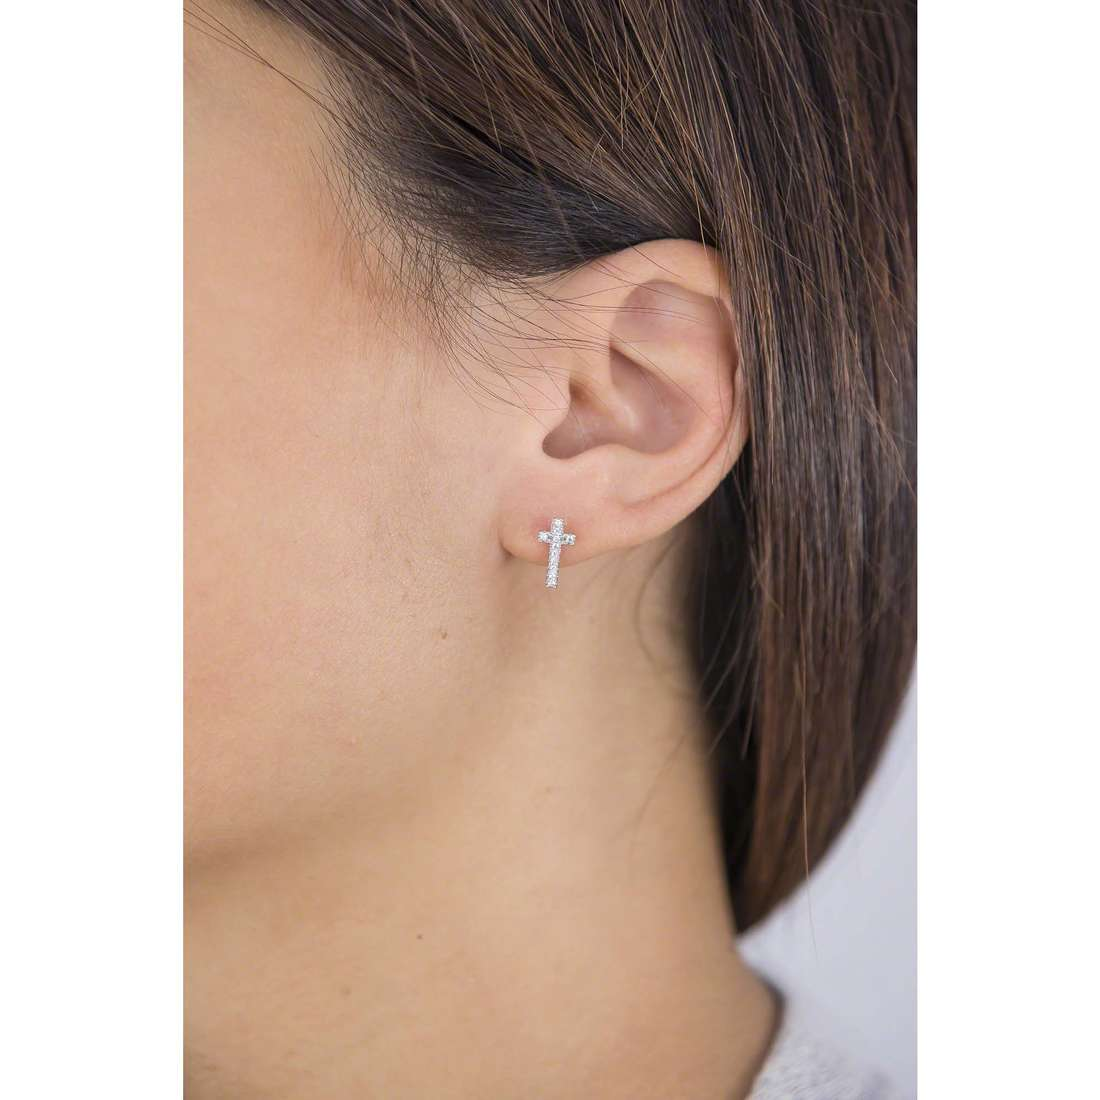 Brosway boucles d'oreille Icons femme G9IS22 indosso